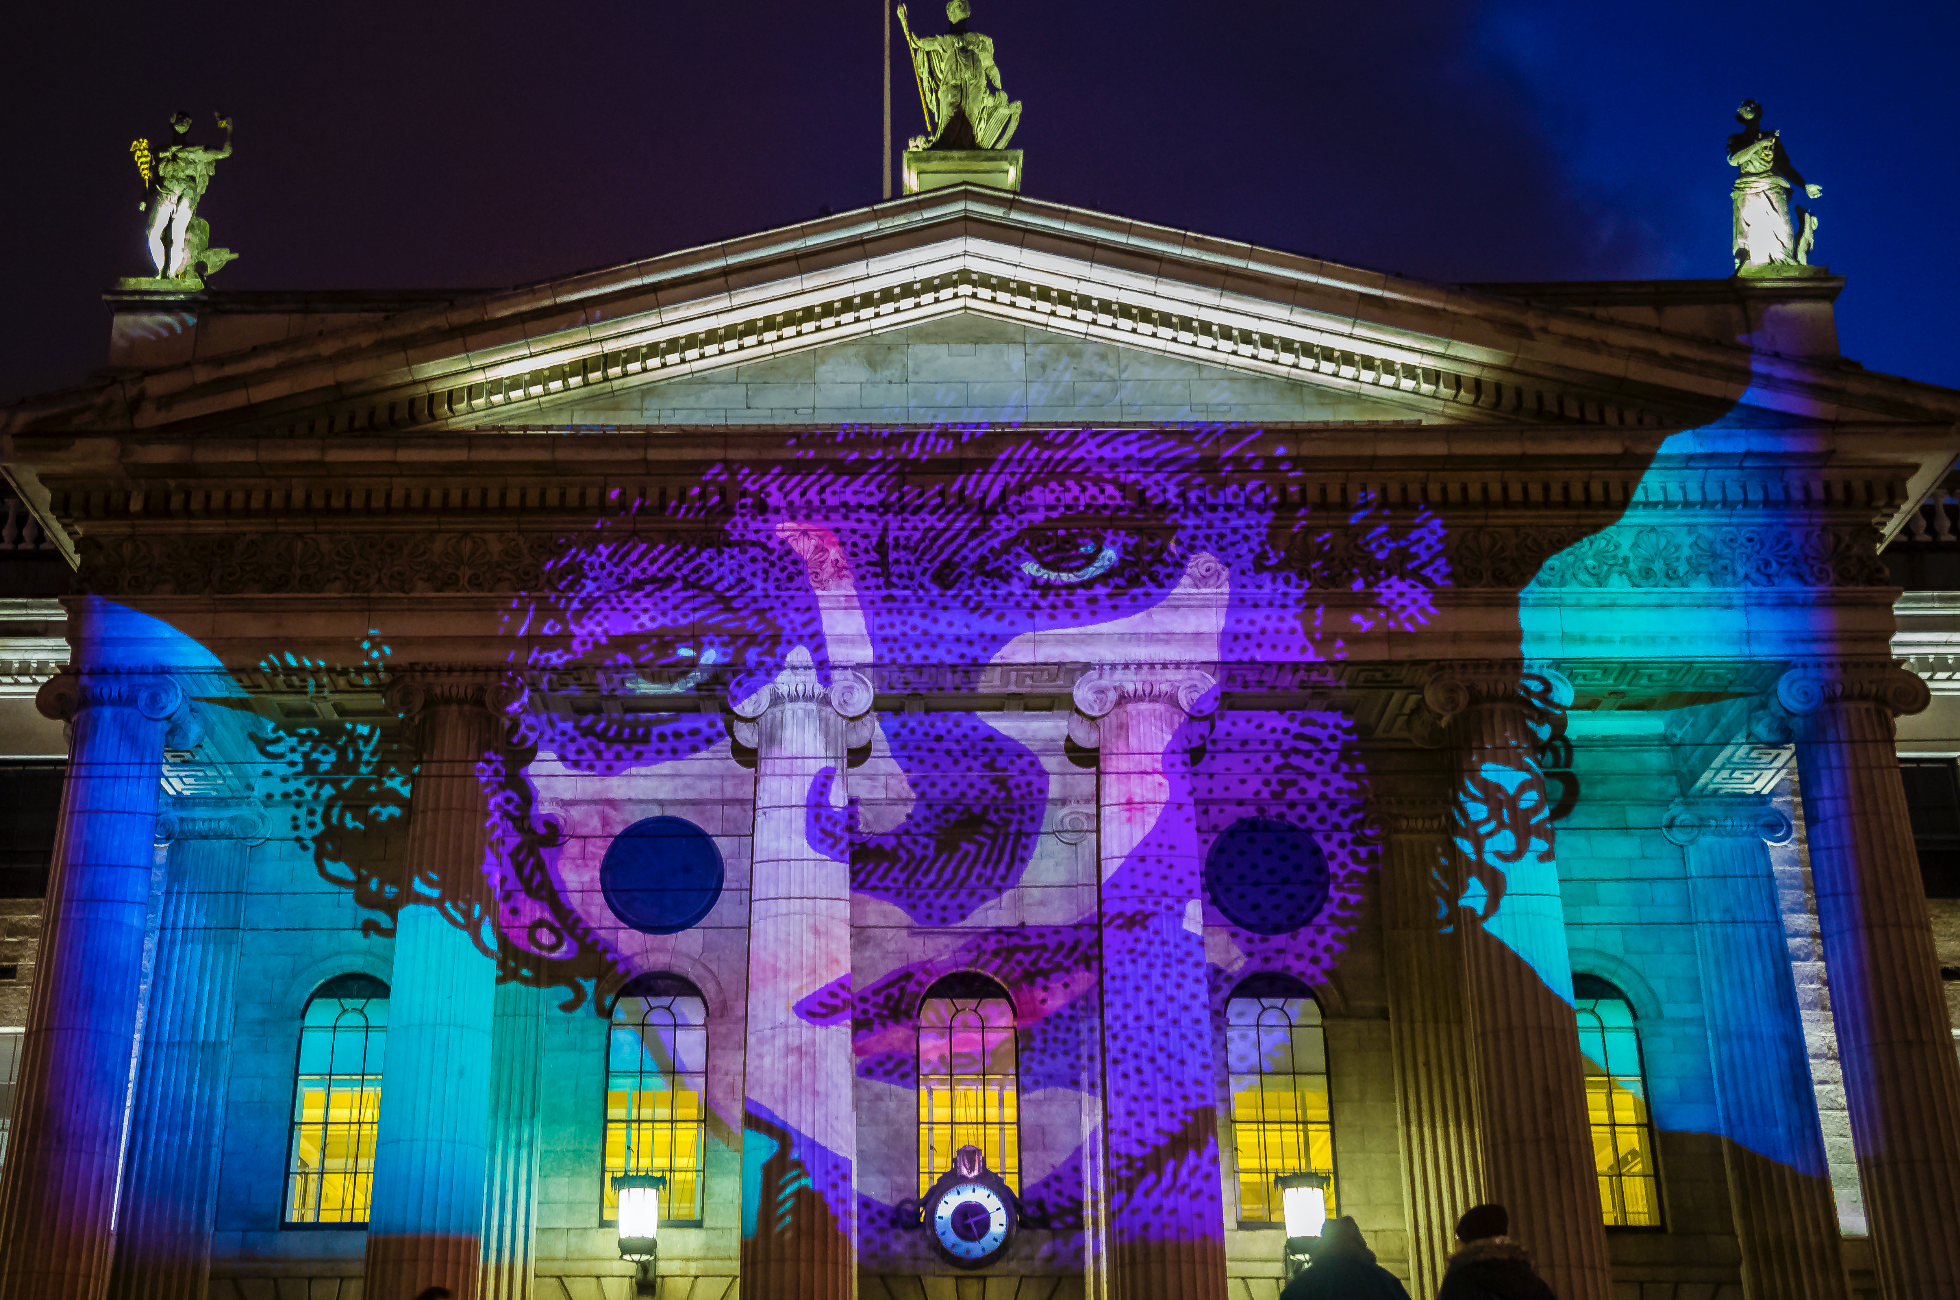 Suffragette and trade unionist Countess Markievicz, art by Jim Fitzpatrick, illuminating the GPO for the 2018 Herstory Light Festival in celebration of the centenary of the Irish Women's Suffrage.